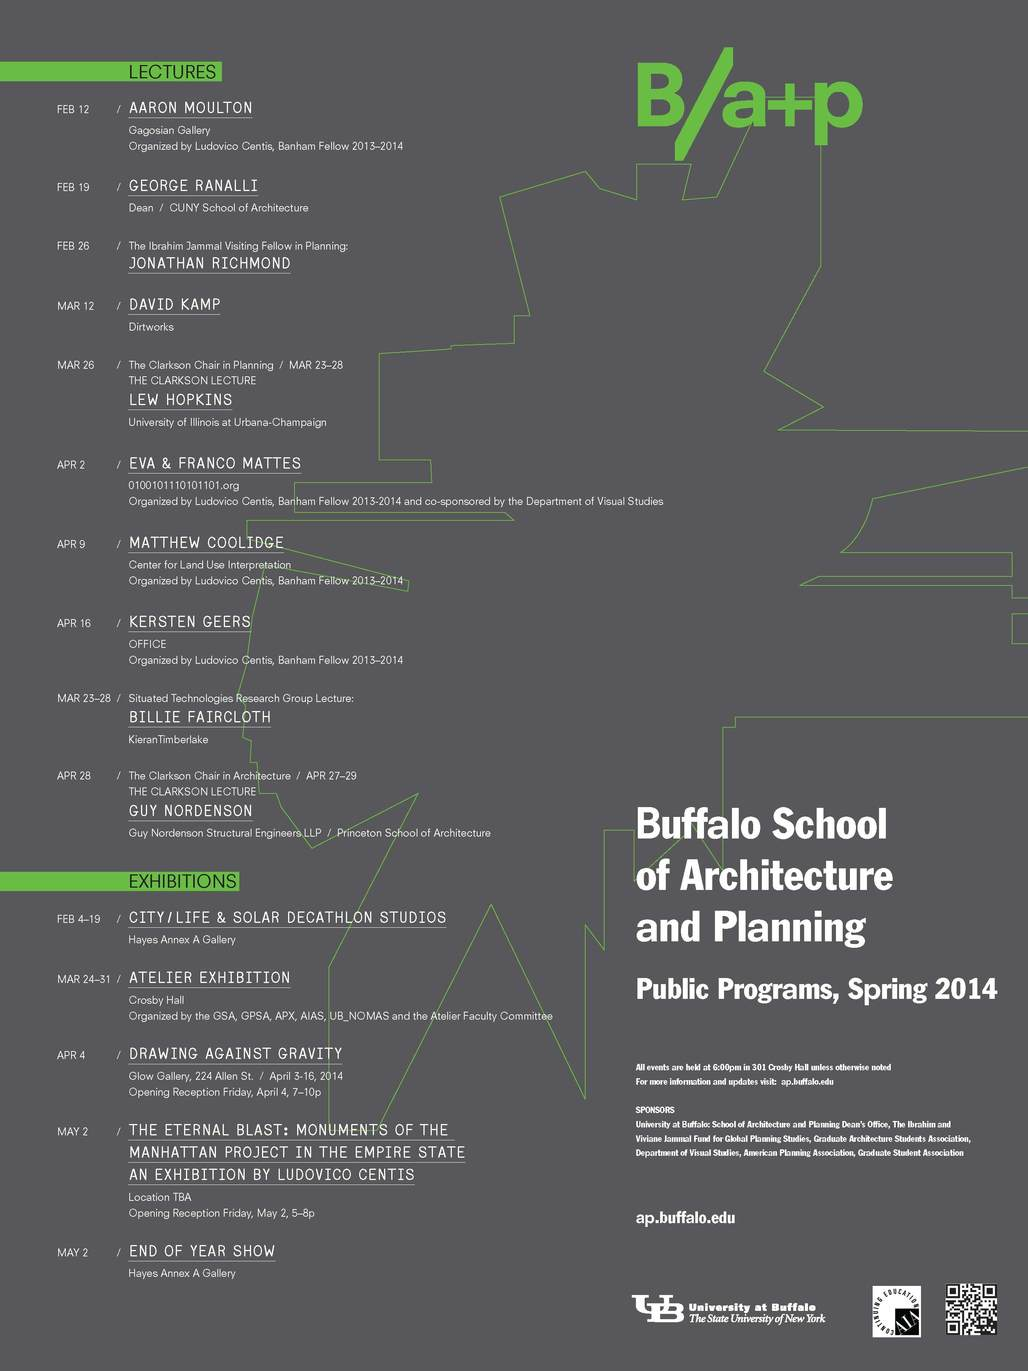 Spring 14 Events at University at Buffalo. Image courtesy of University at Buffalo School of Architecture and Planning.